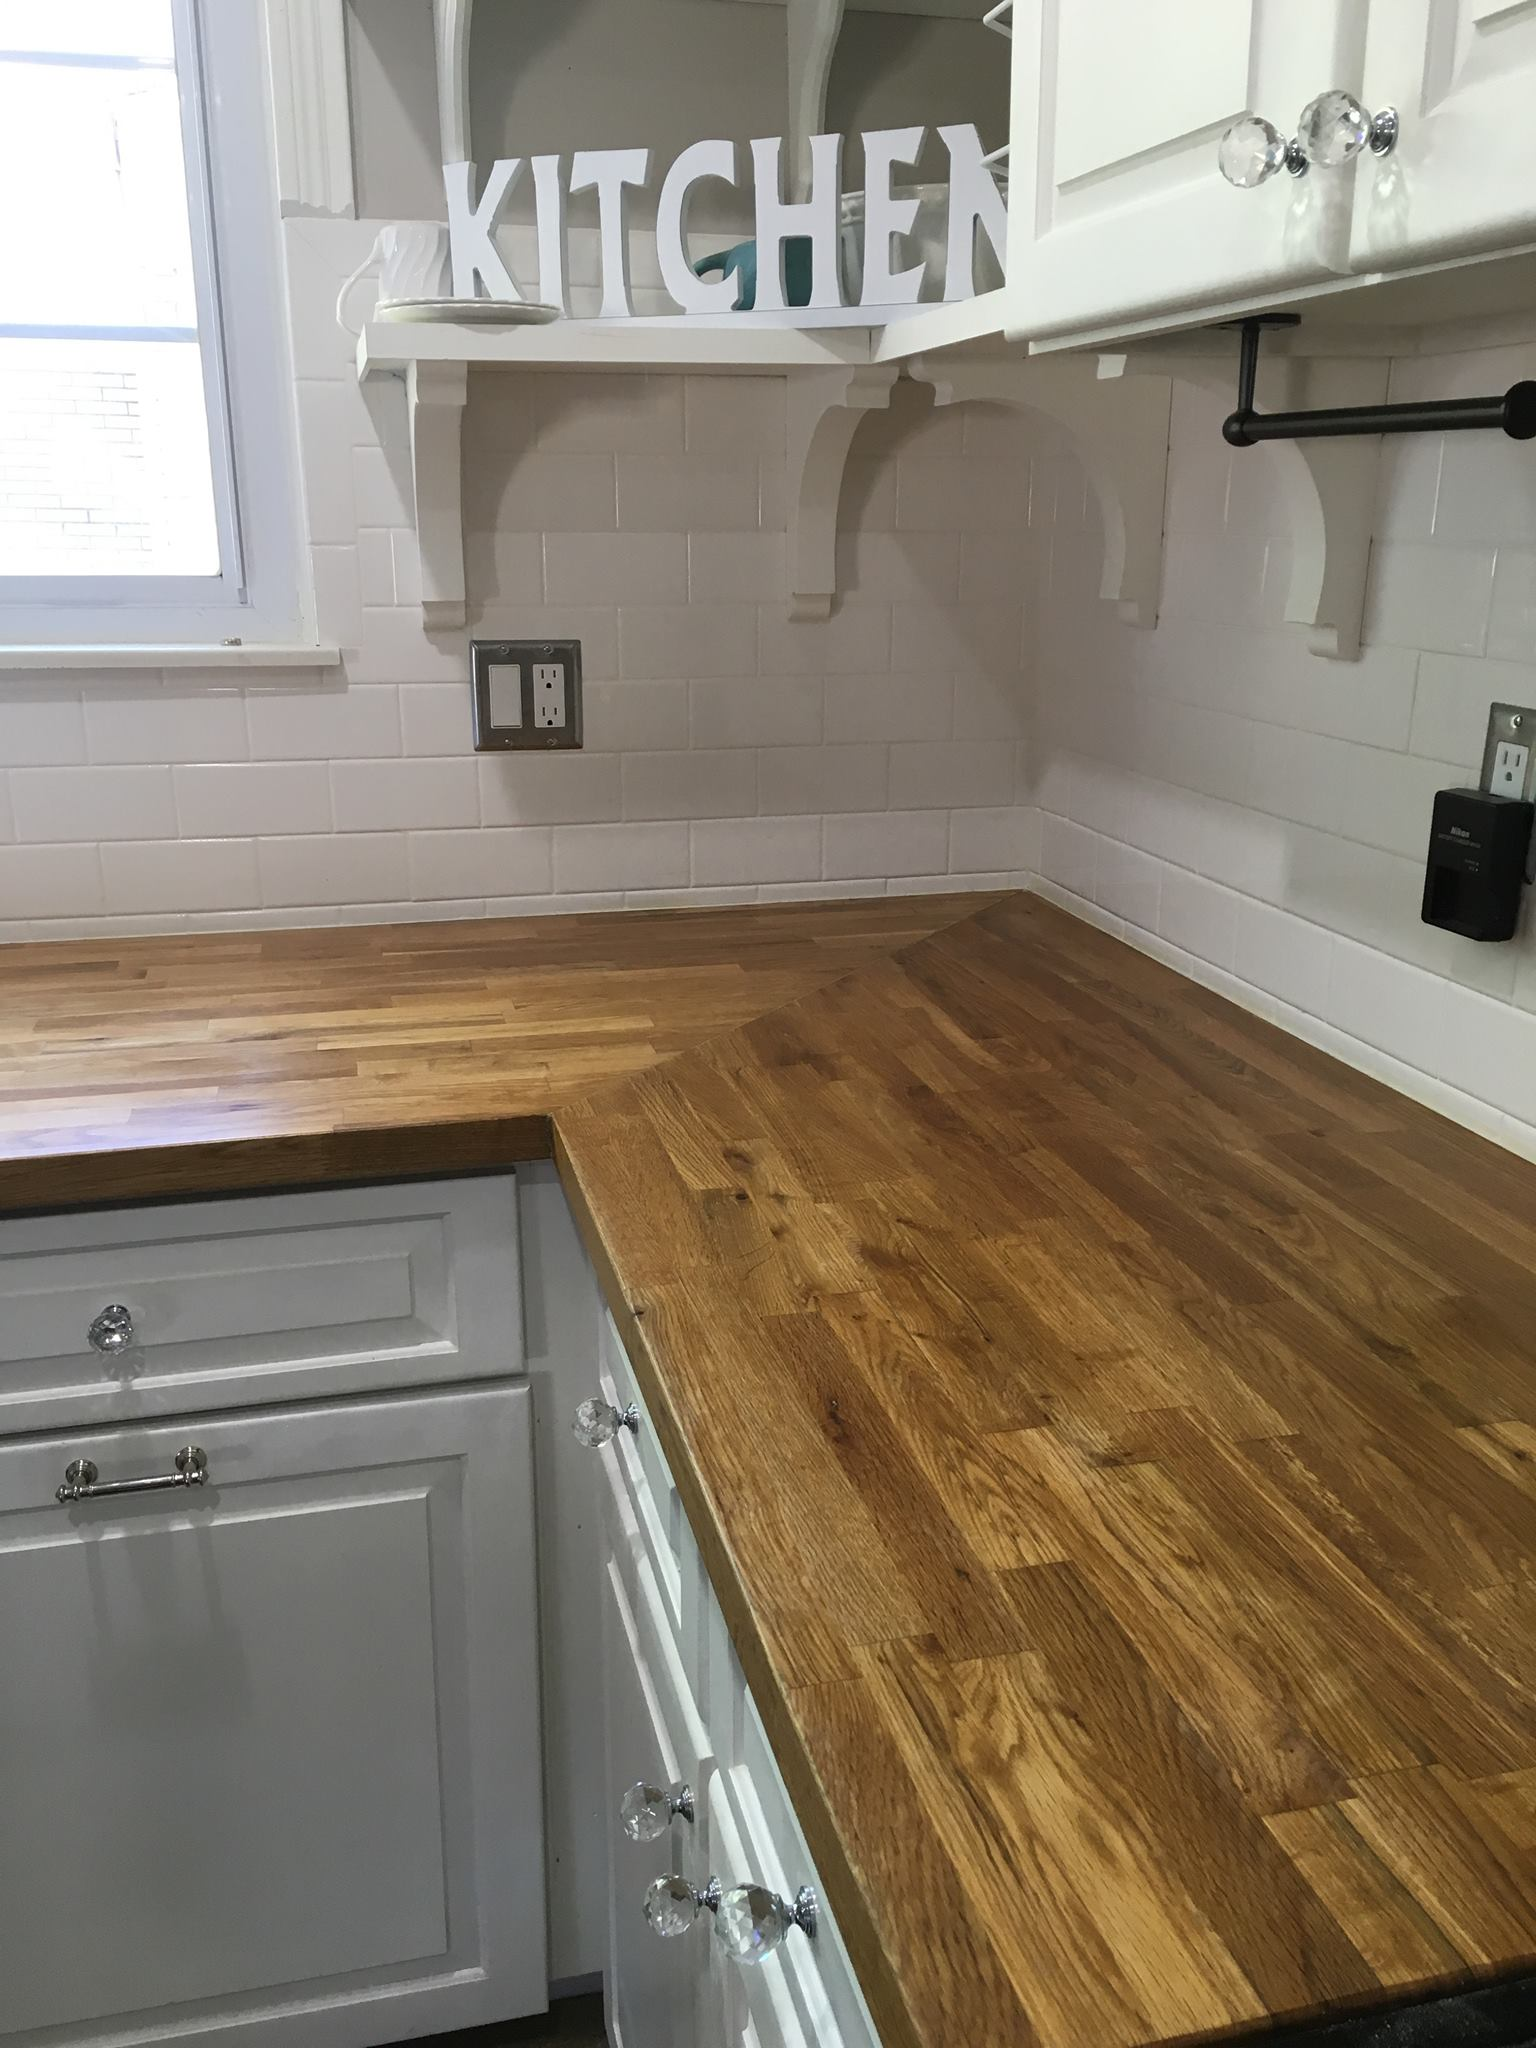 10 Reasons To Fall In Love With Wood Countertops For Your